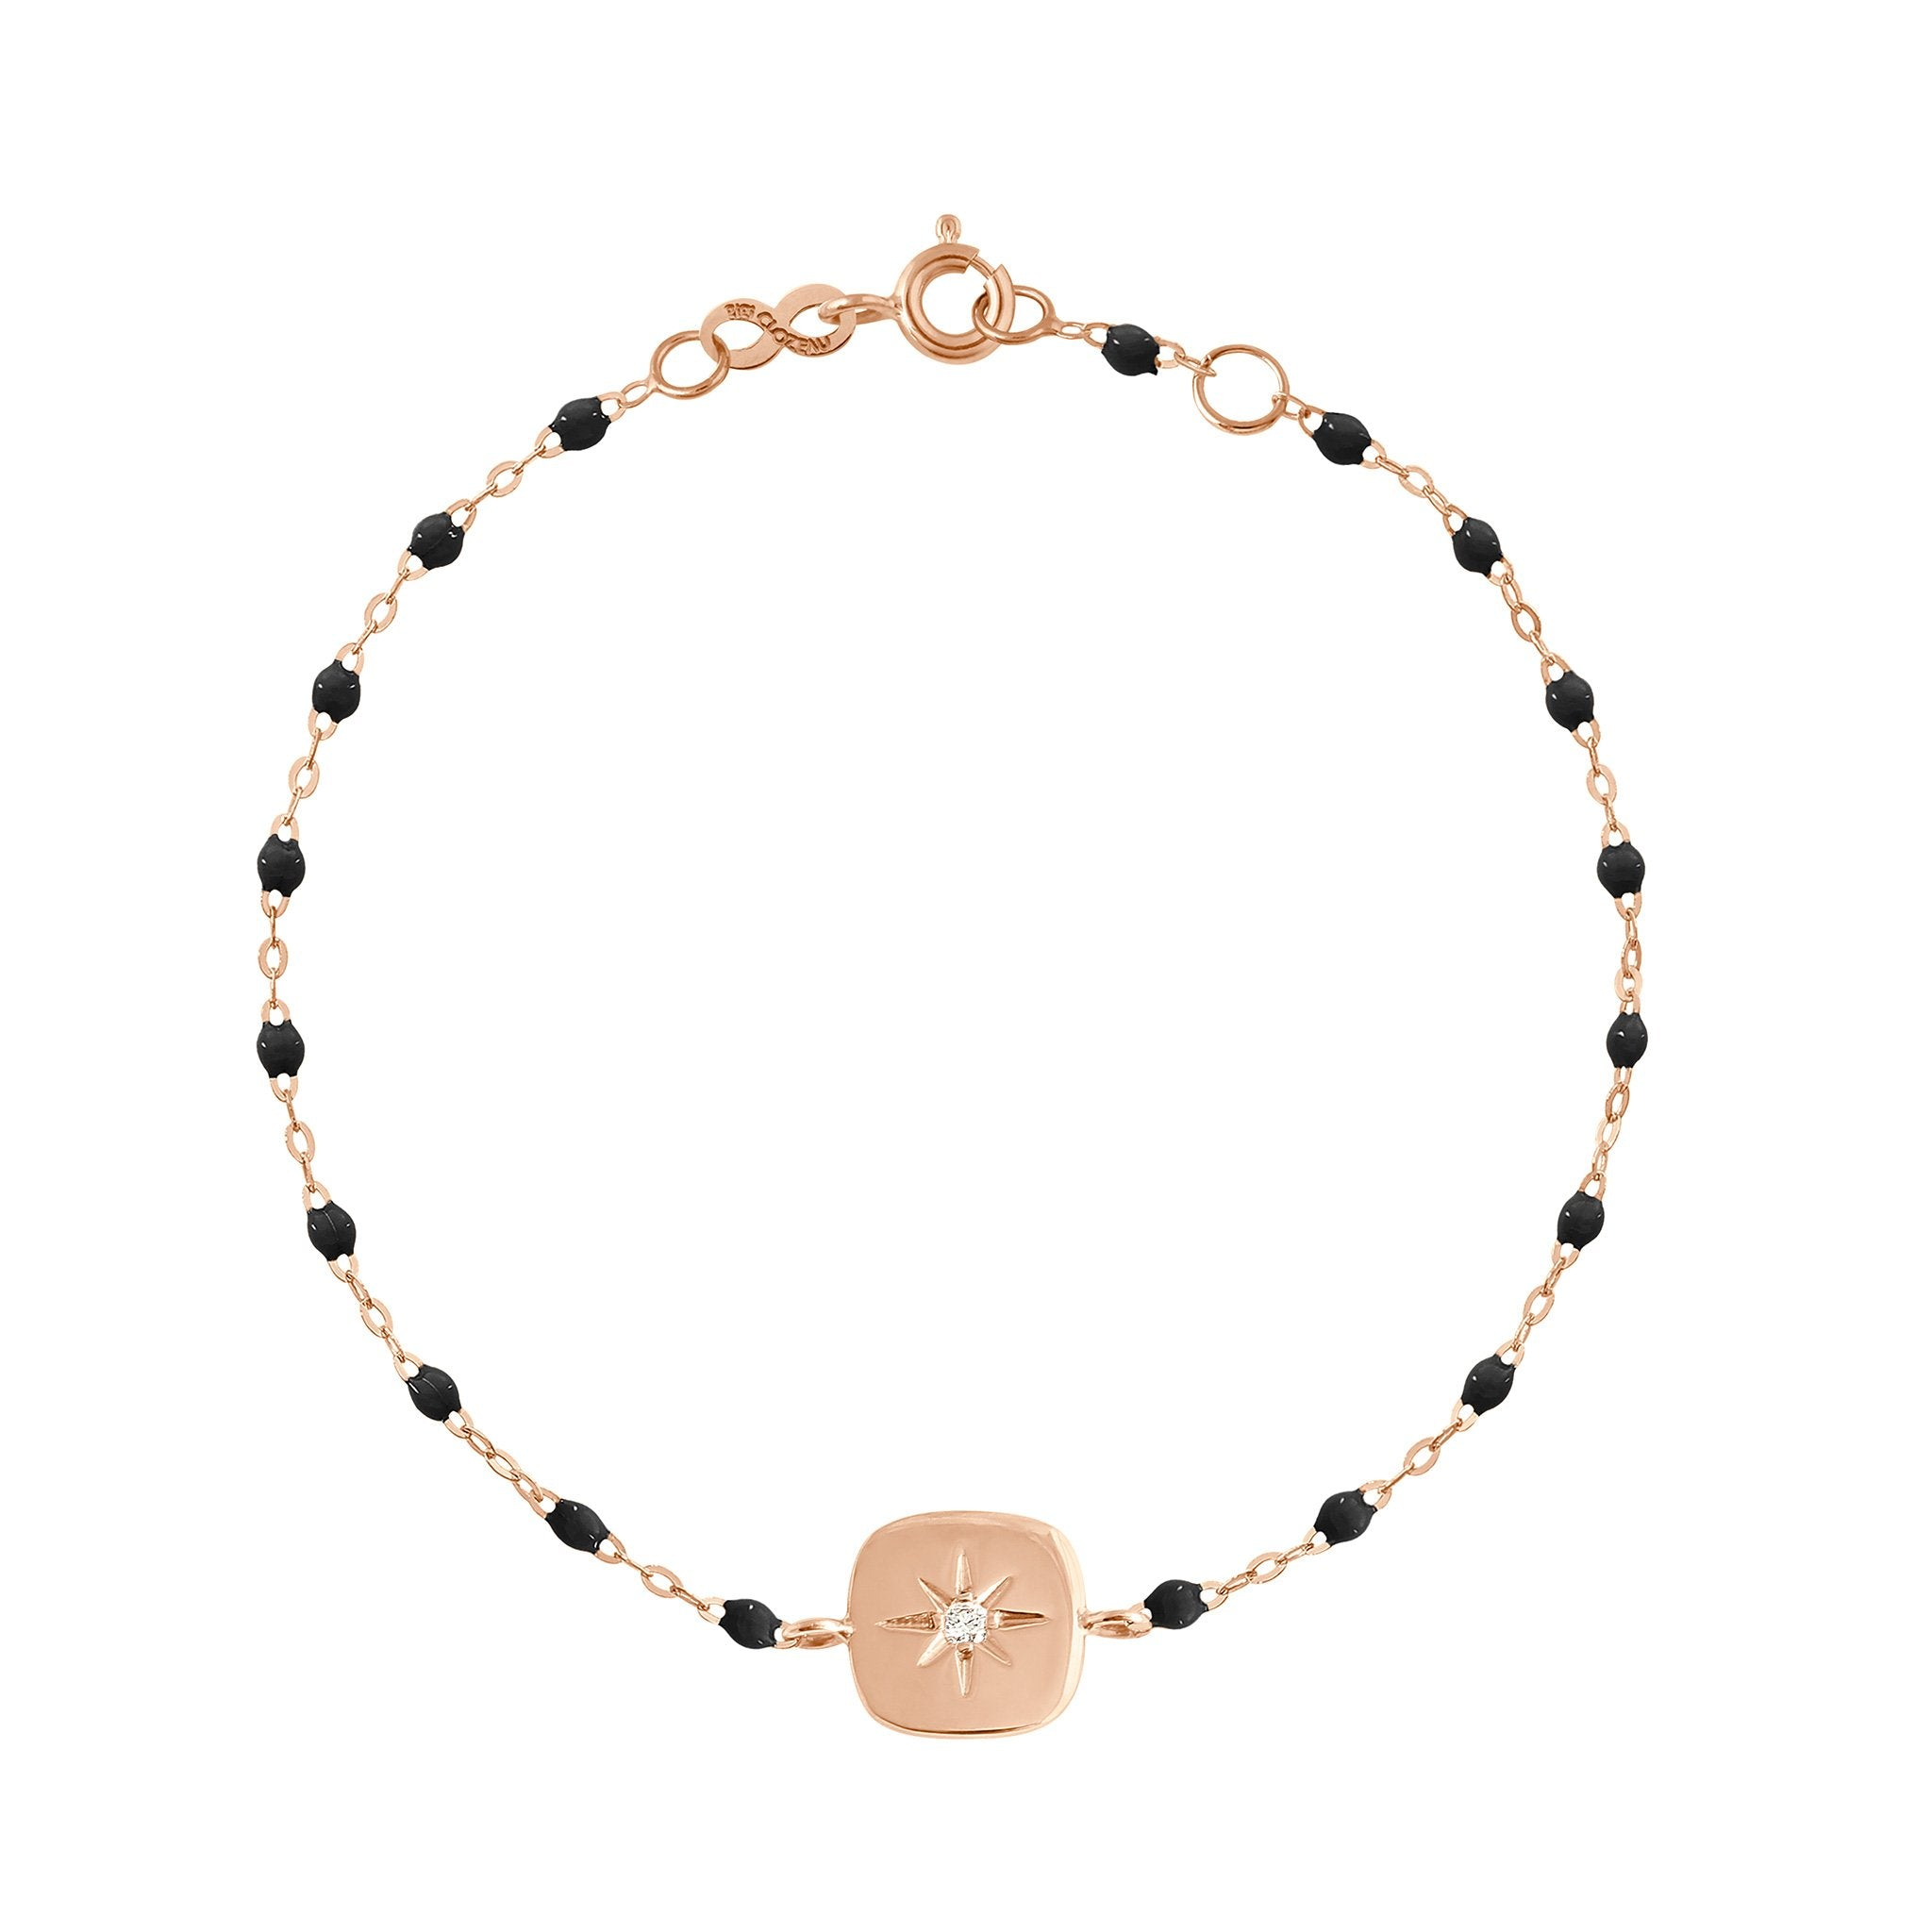 Gigi Clozeau - Miss Gigi Black diamond bracelet, Rose Gold, 6.7""